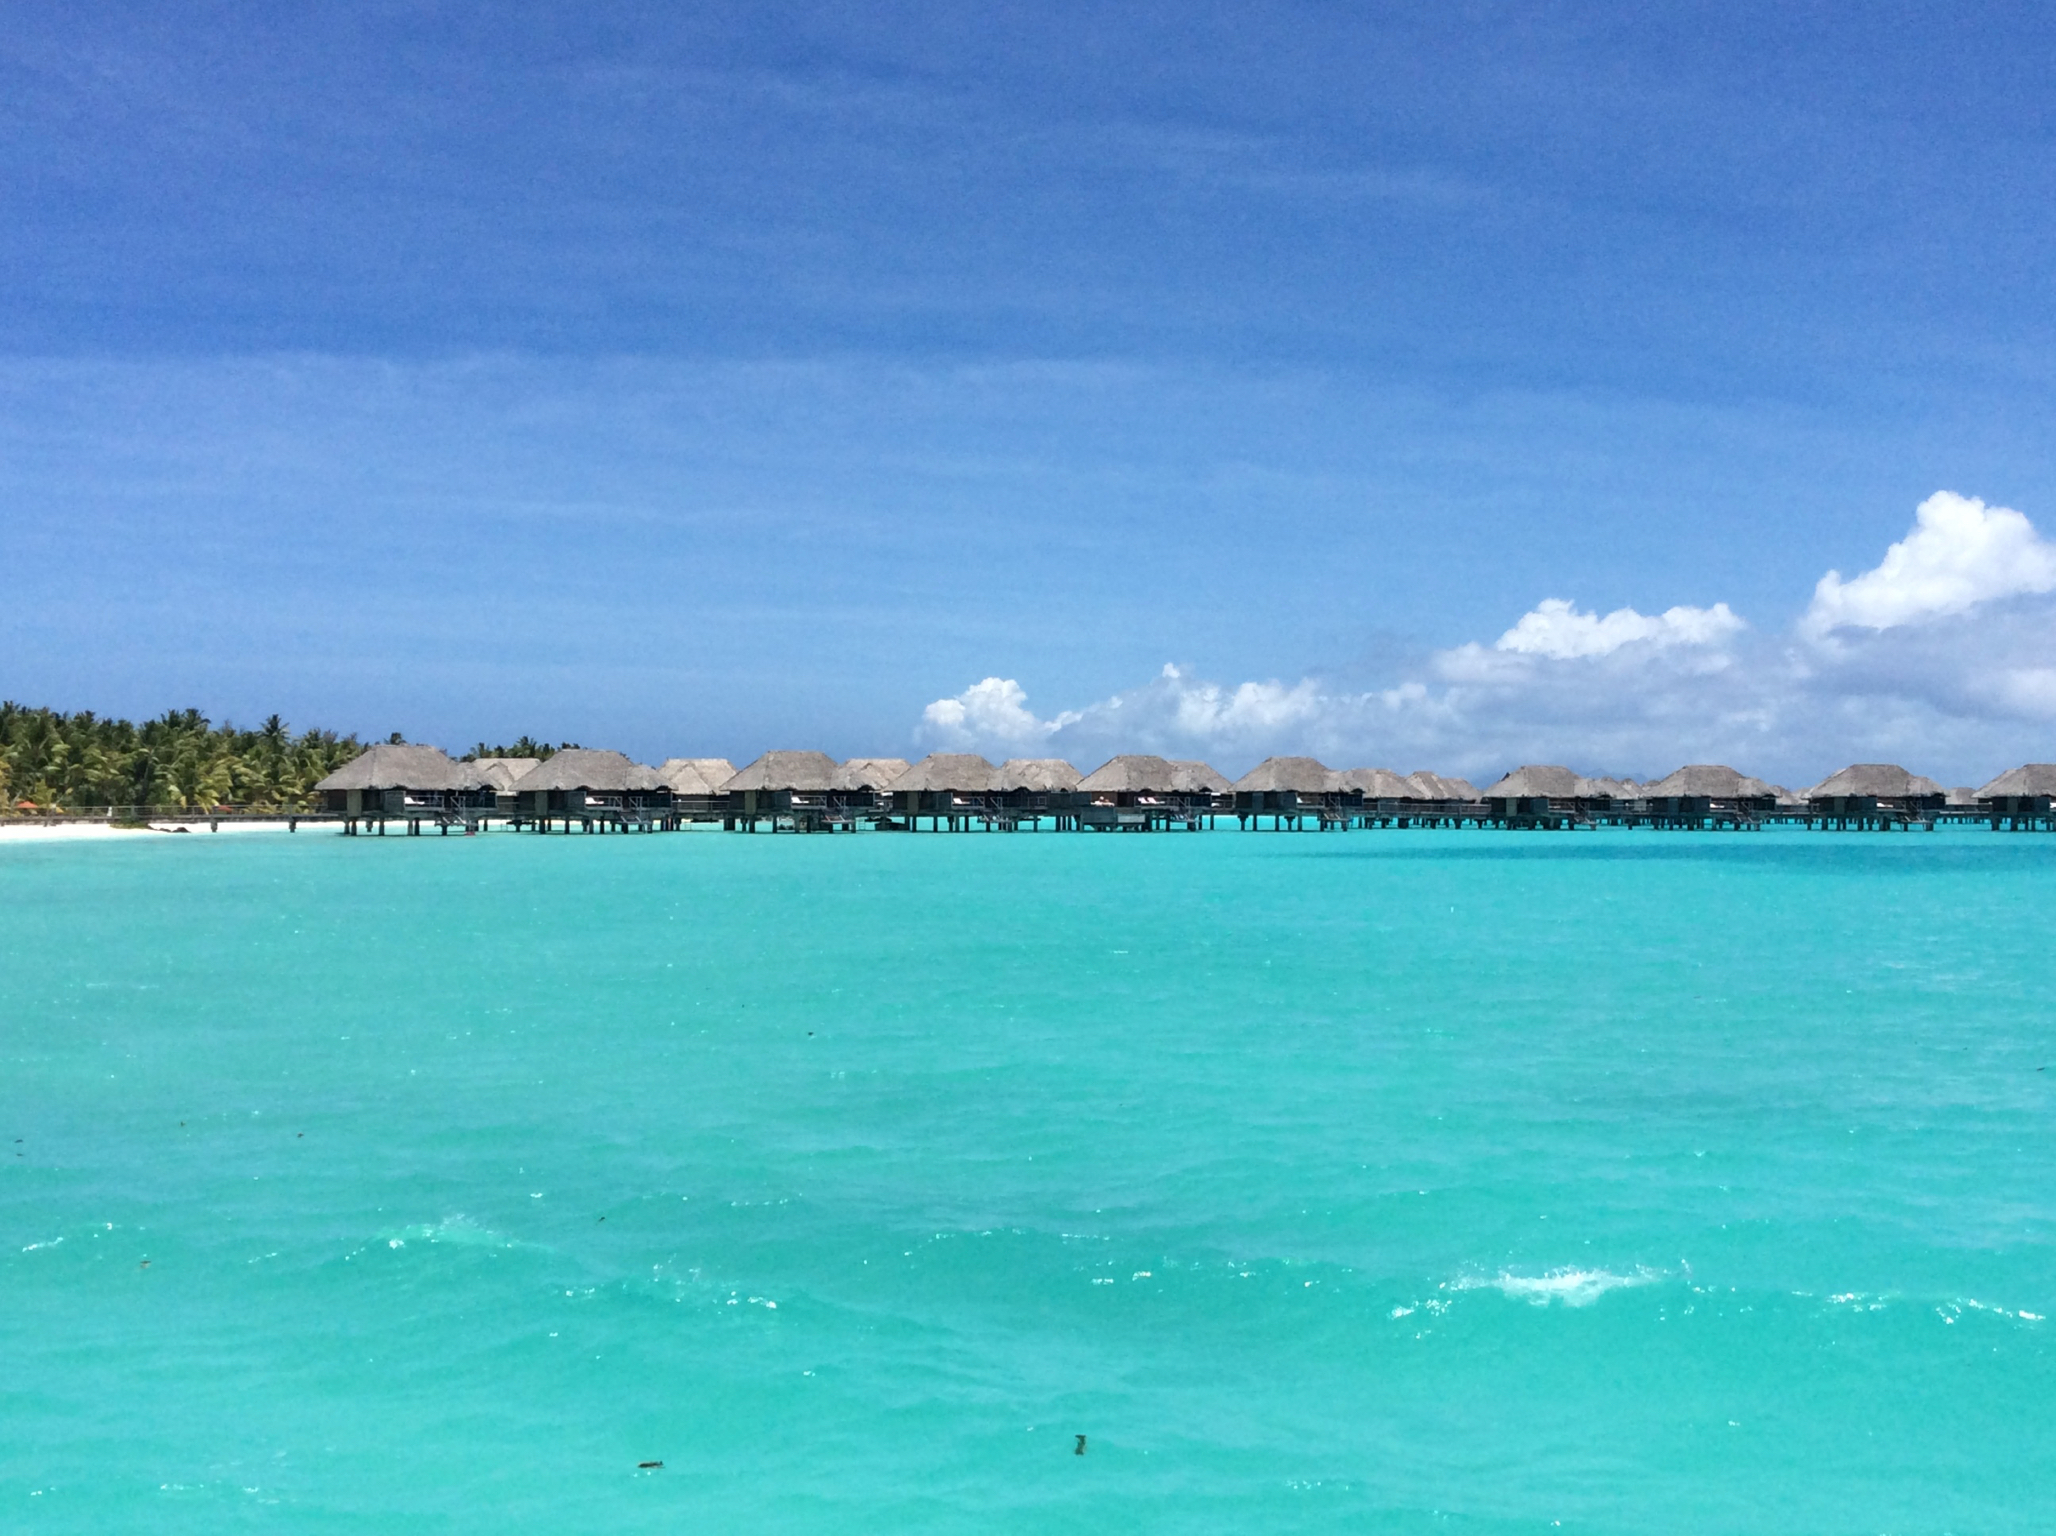 Four Seasons Bora Bora is a fifteen-minute speedboat ride from the airport.